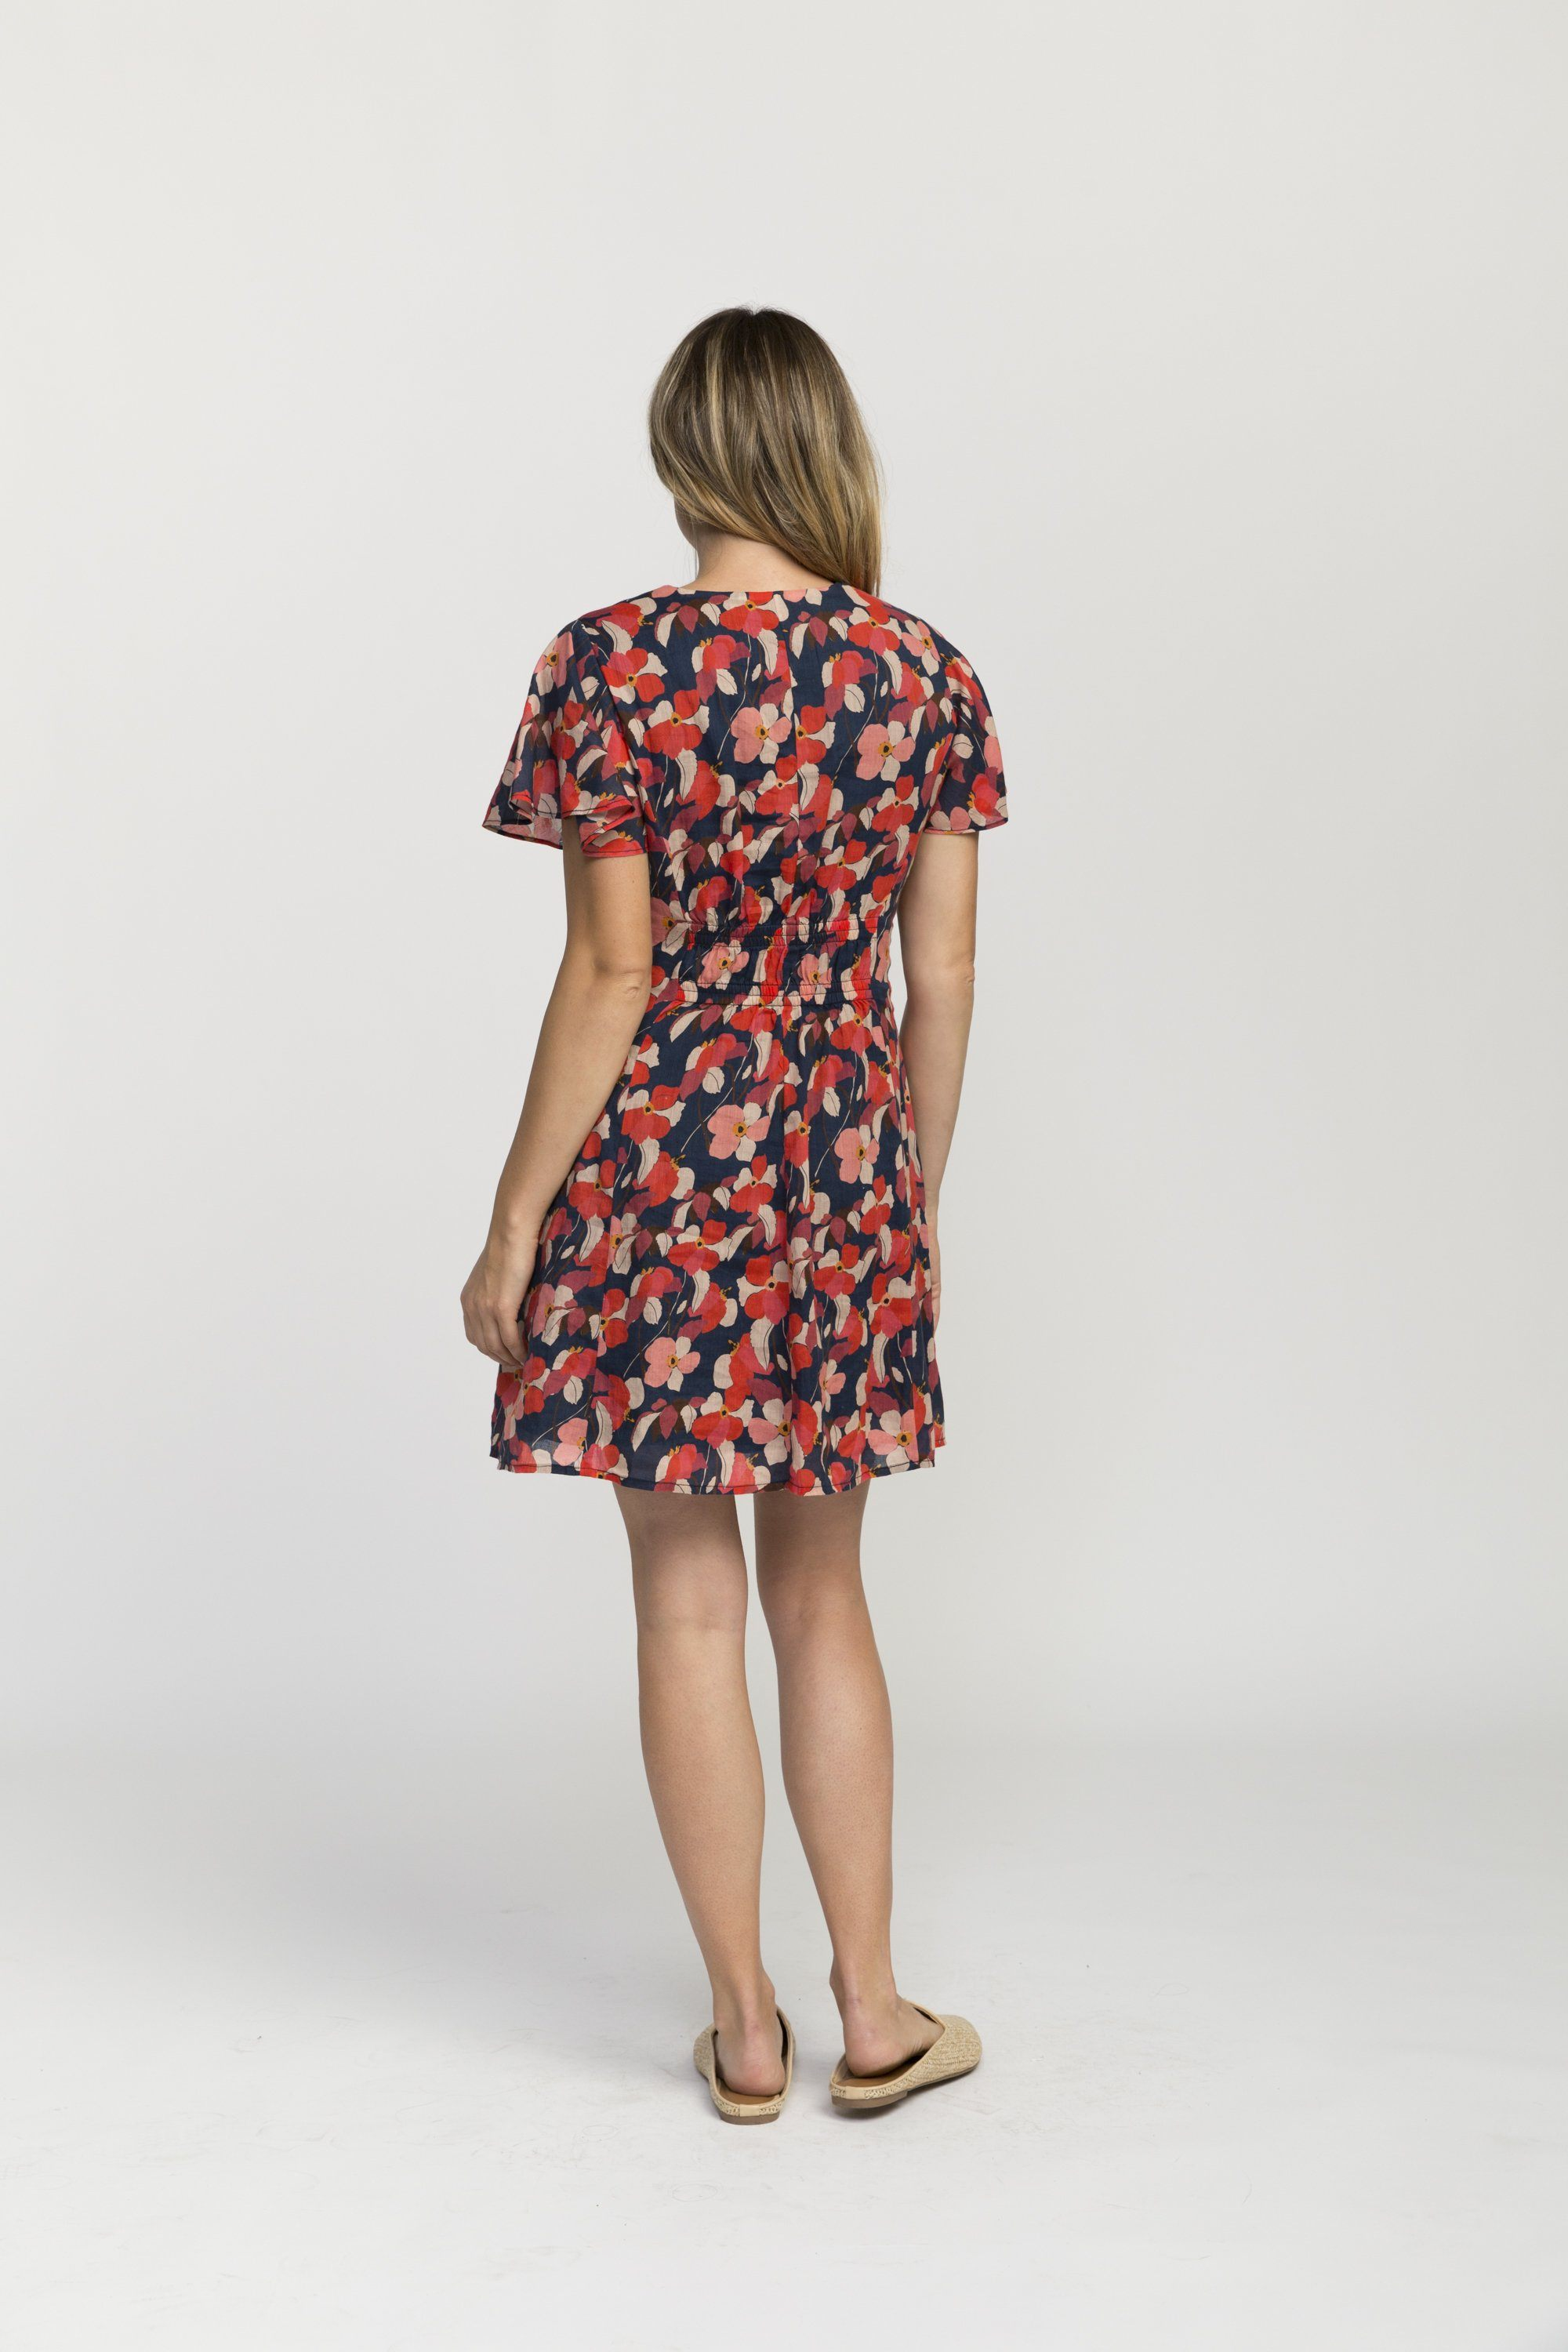 Sistine dress NAVY FLORAL by Trovata - 4